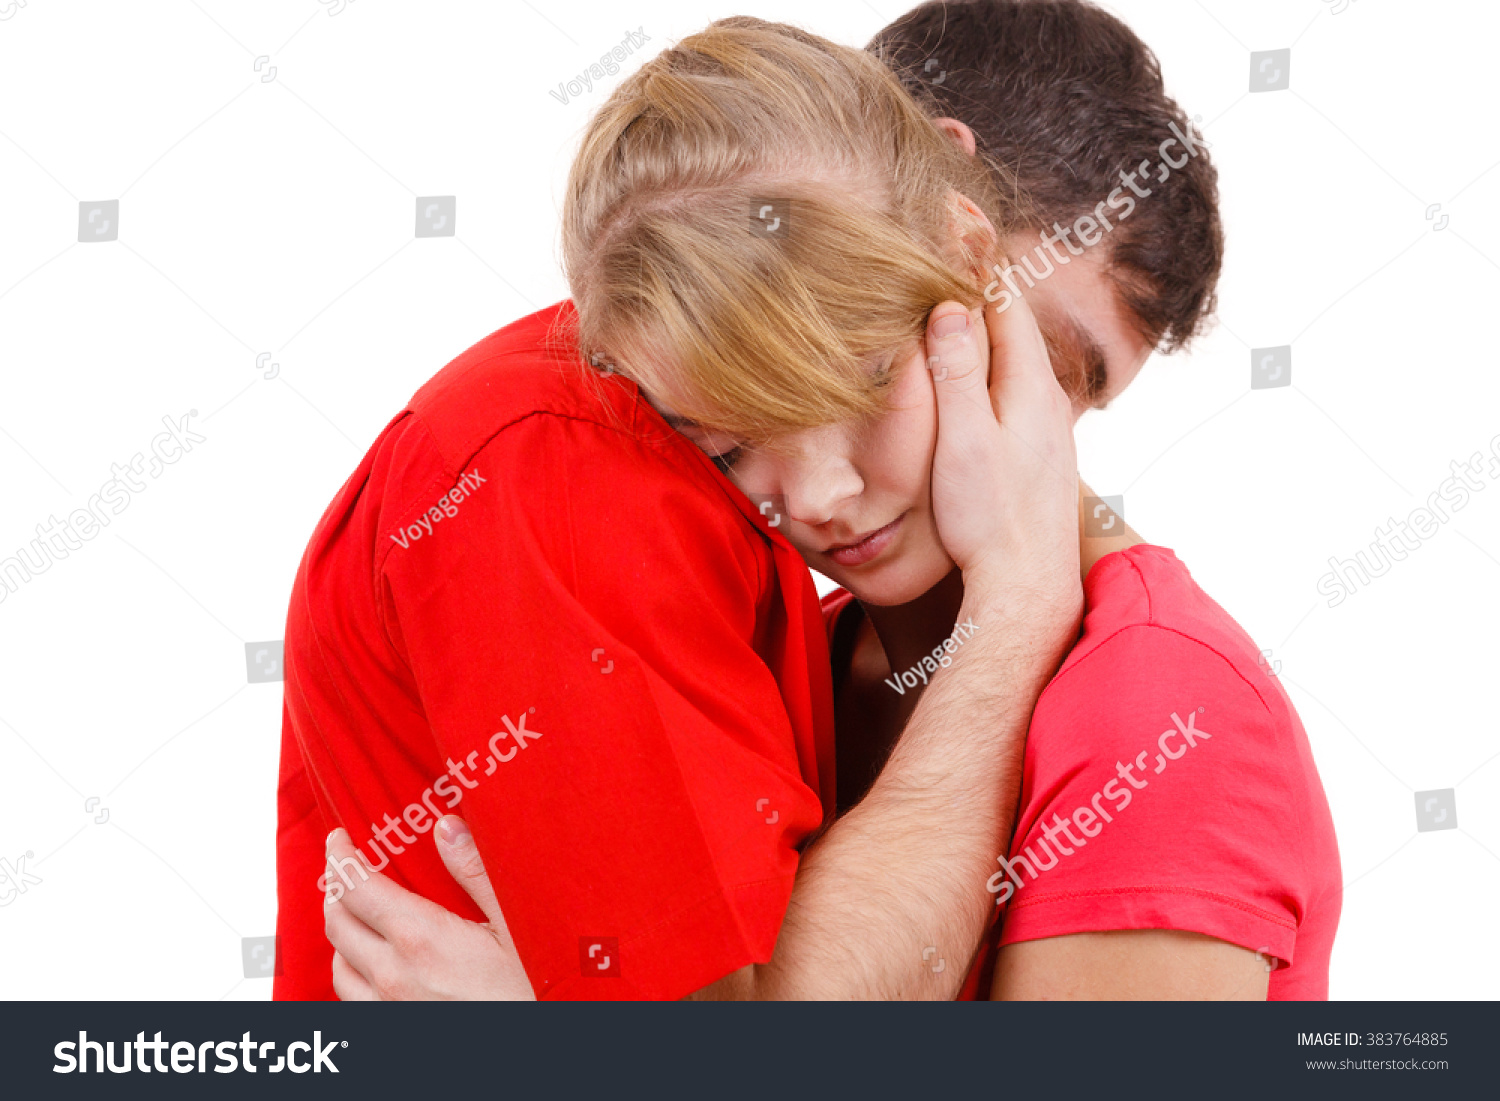 Couple Hugging Woman Sad Being Consoled Stock Photo ...